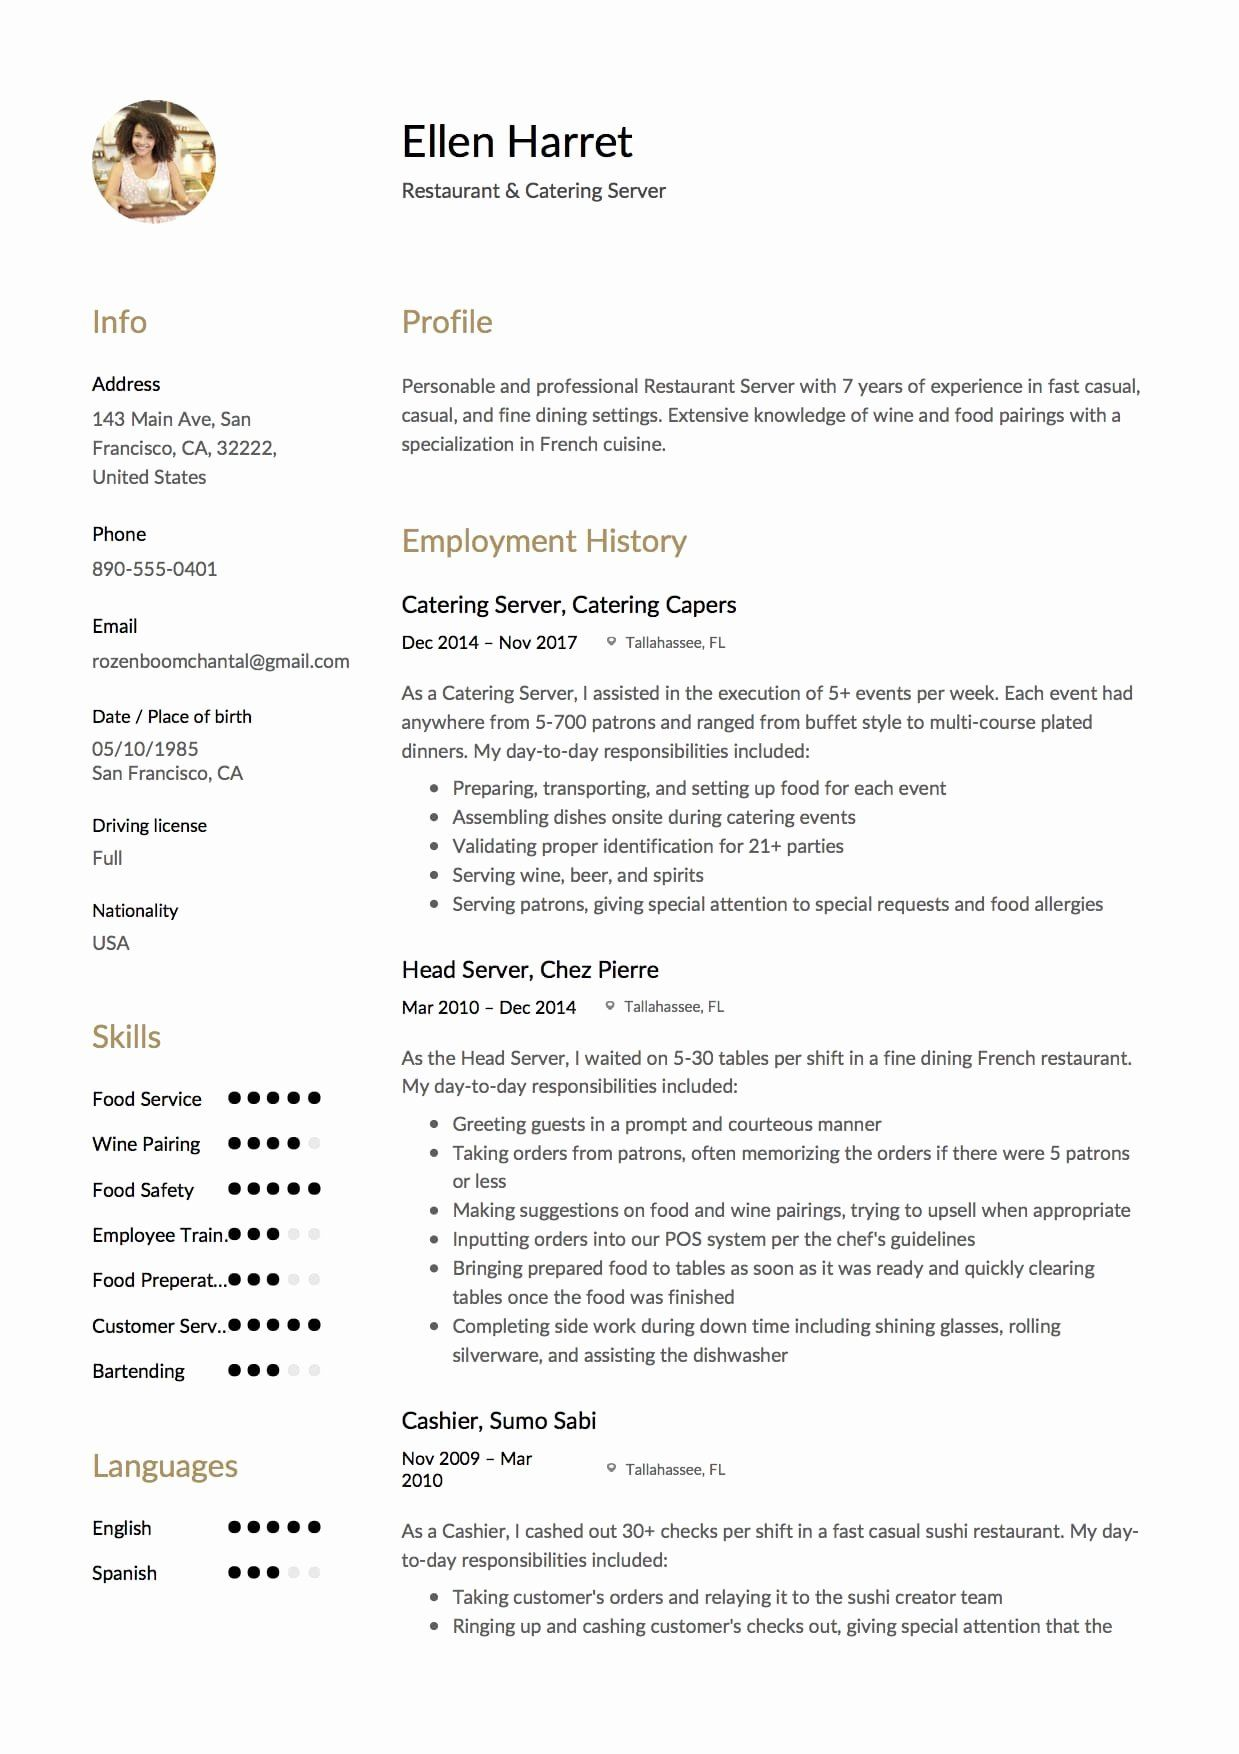 Resume Examples for Servers Best Of 12 Restaurant Server